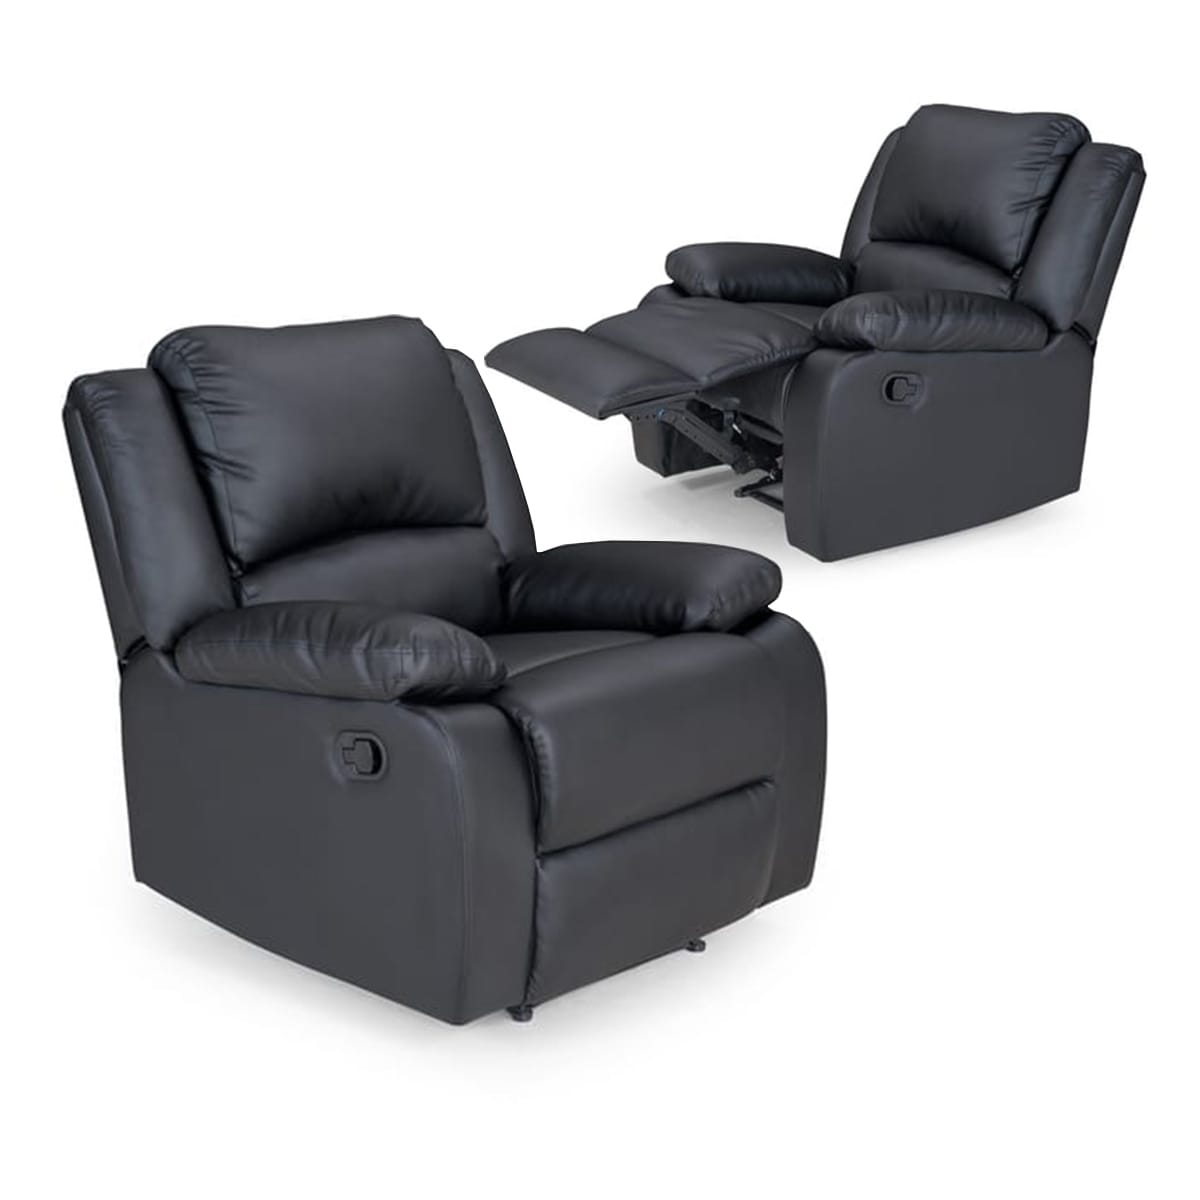 ensemble canap fauteuil pas cher id es de d coration. Black Bedroom Furniture Sets. Home Design Ideas